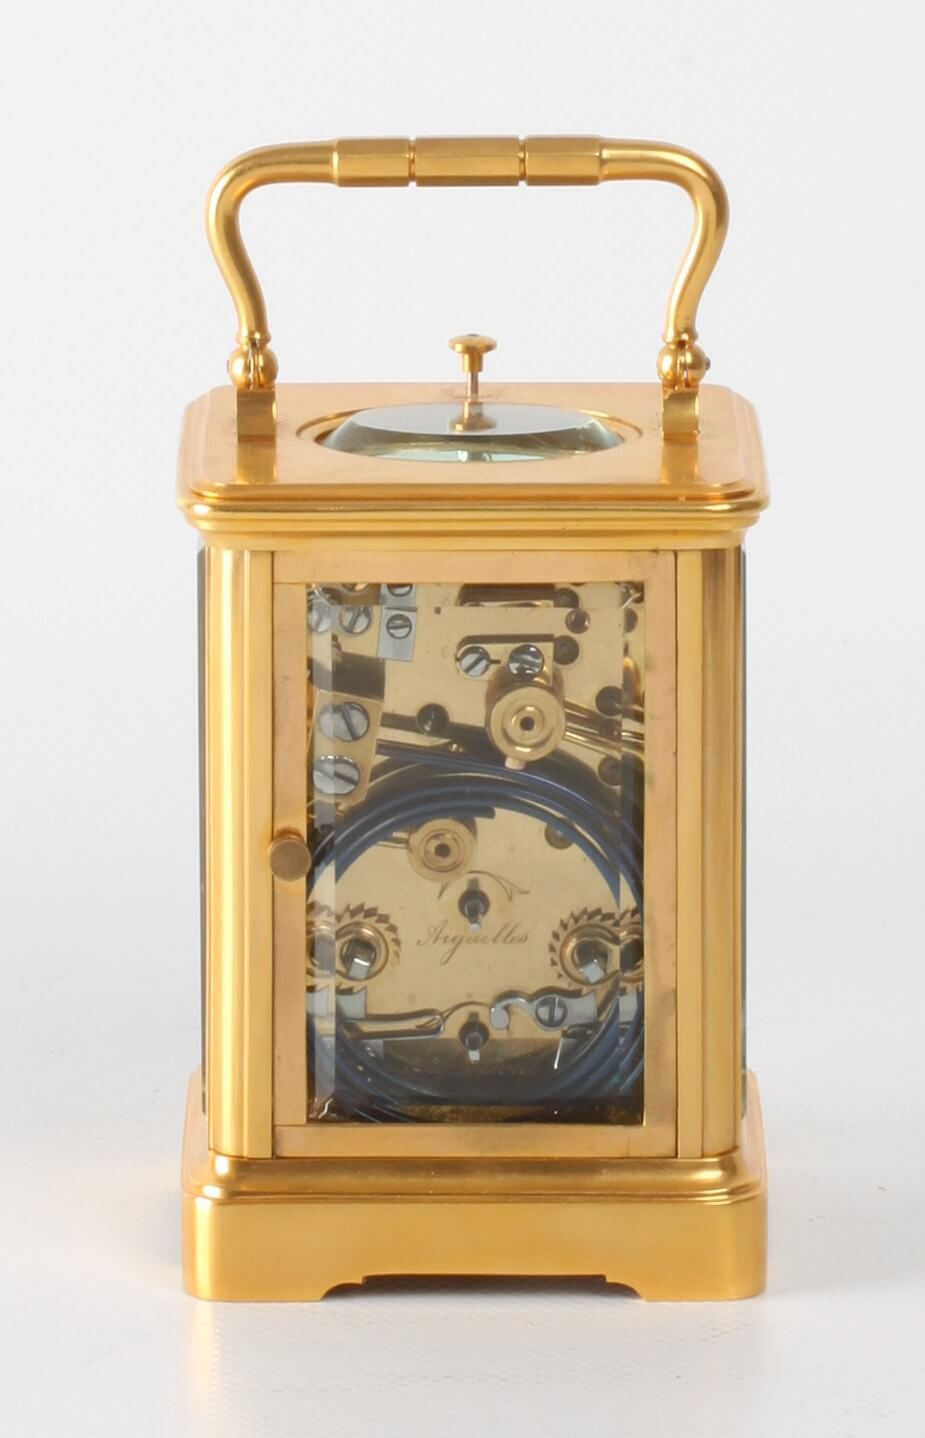 French Corniche Quarter Striking Margaine Carriage Clock 1880